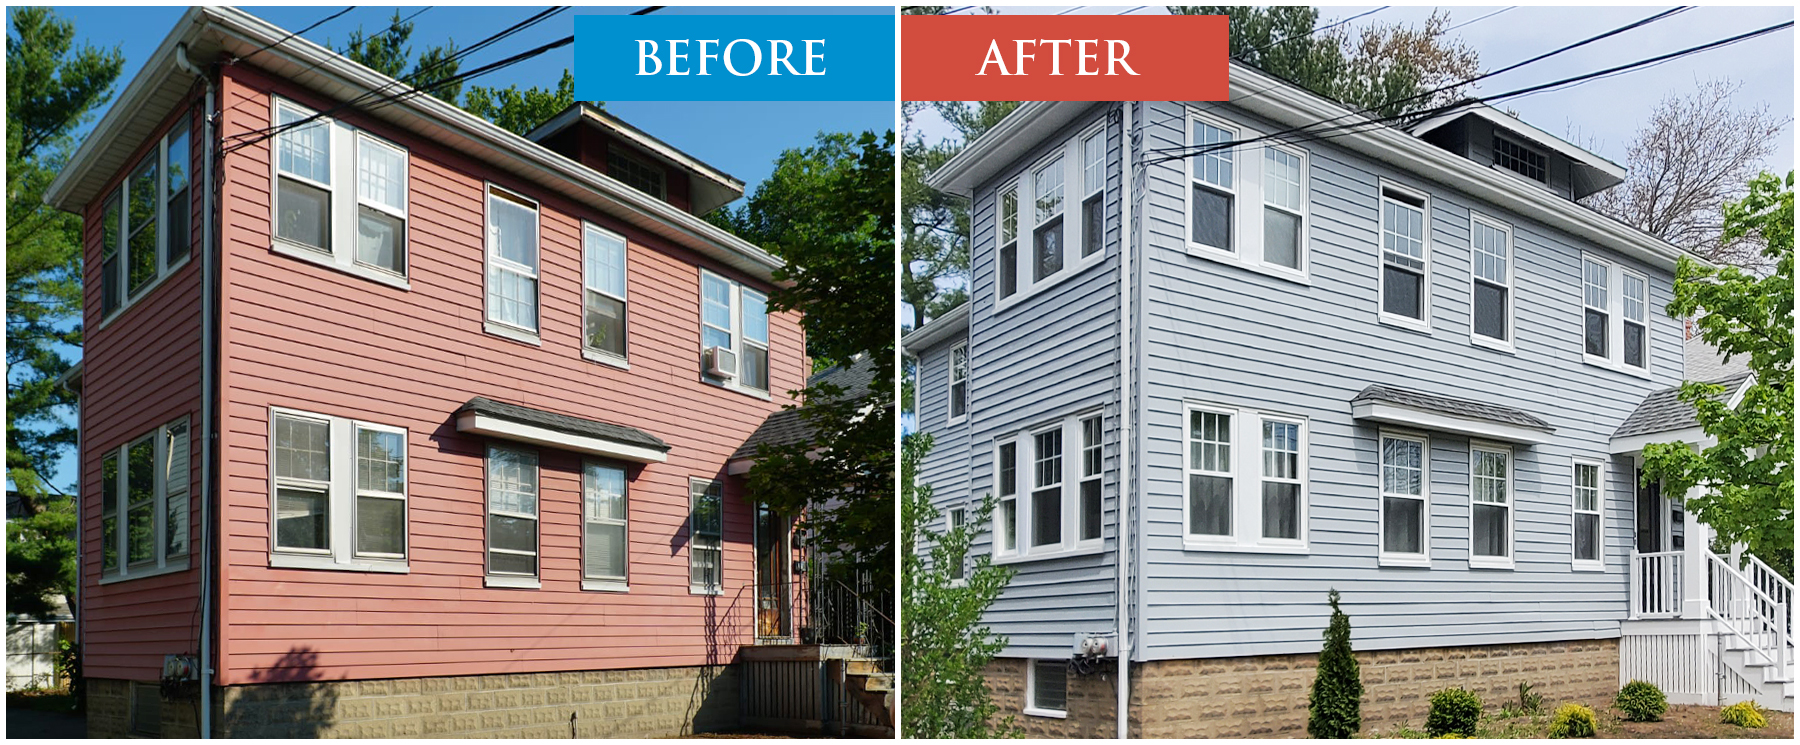 House Painting, Color Change. Updated Paint, Before & After Paint Job. Marlborough, MA.